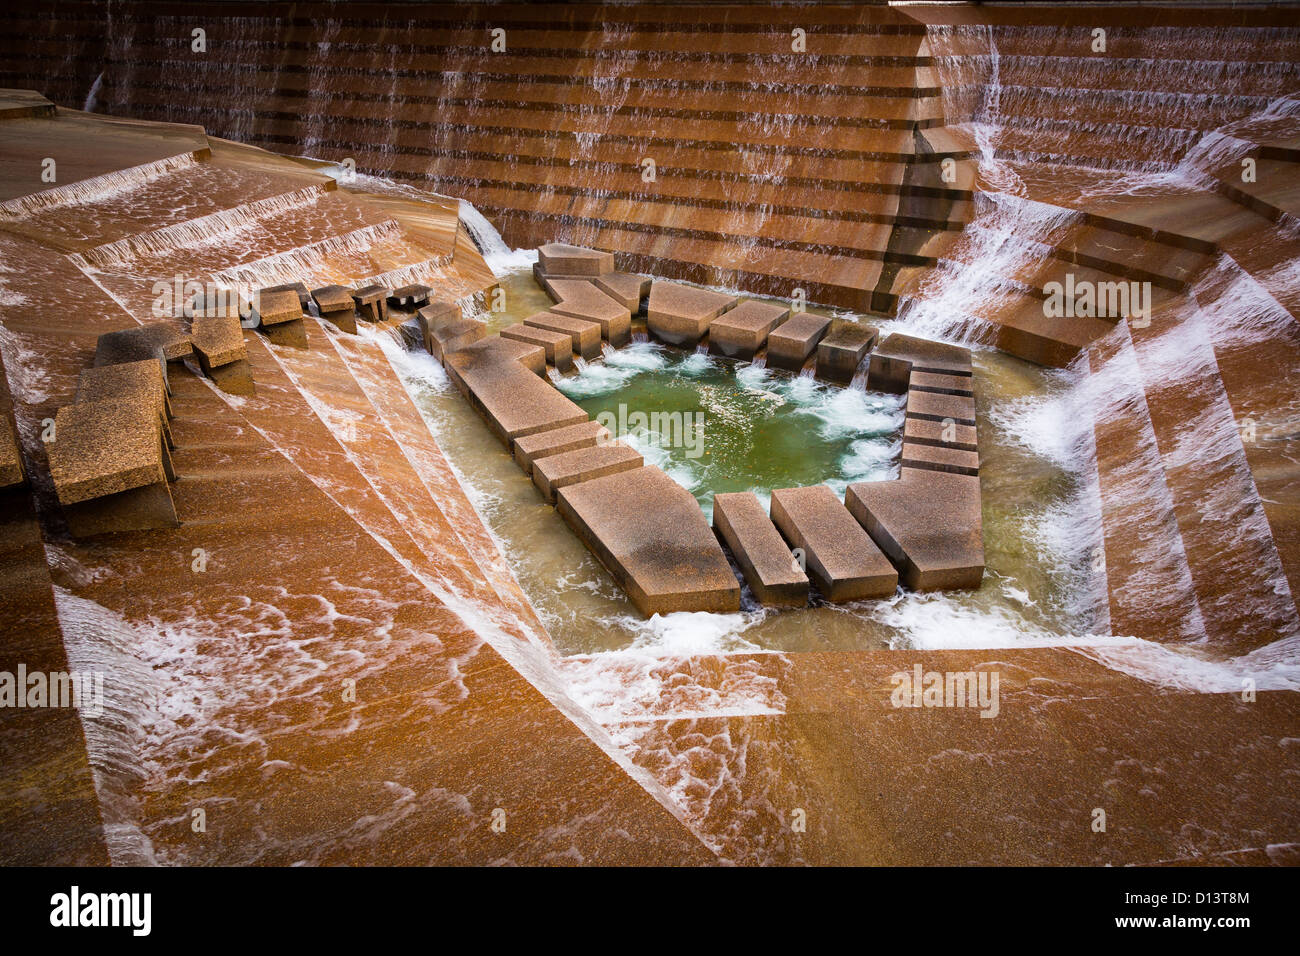 Texas Gardens Stock Photos & Texas Gardens Stock Images - Alamy